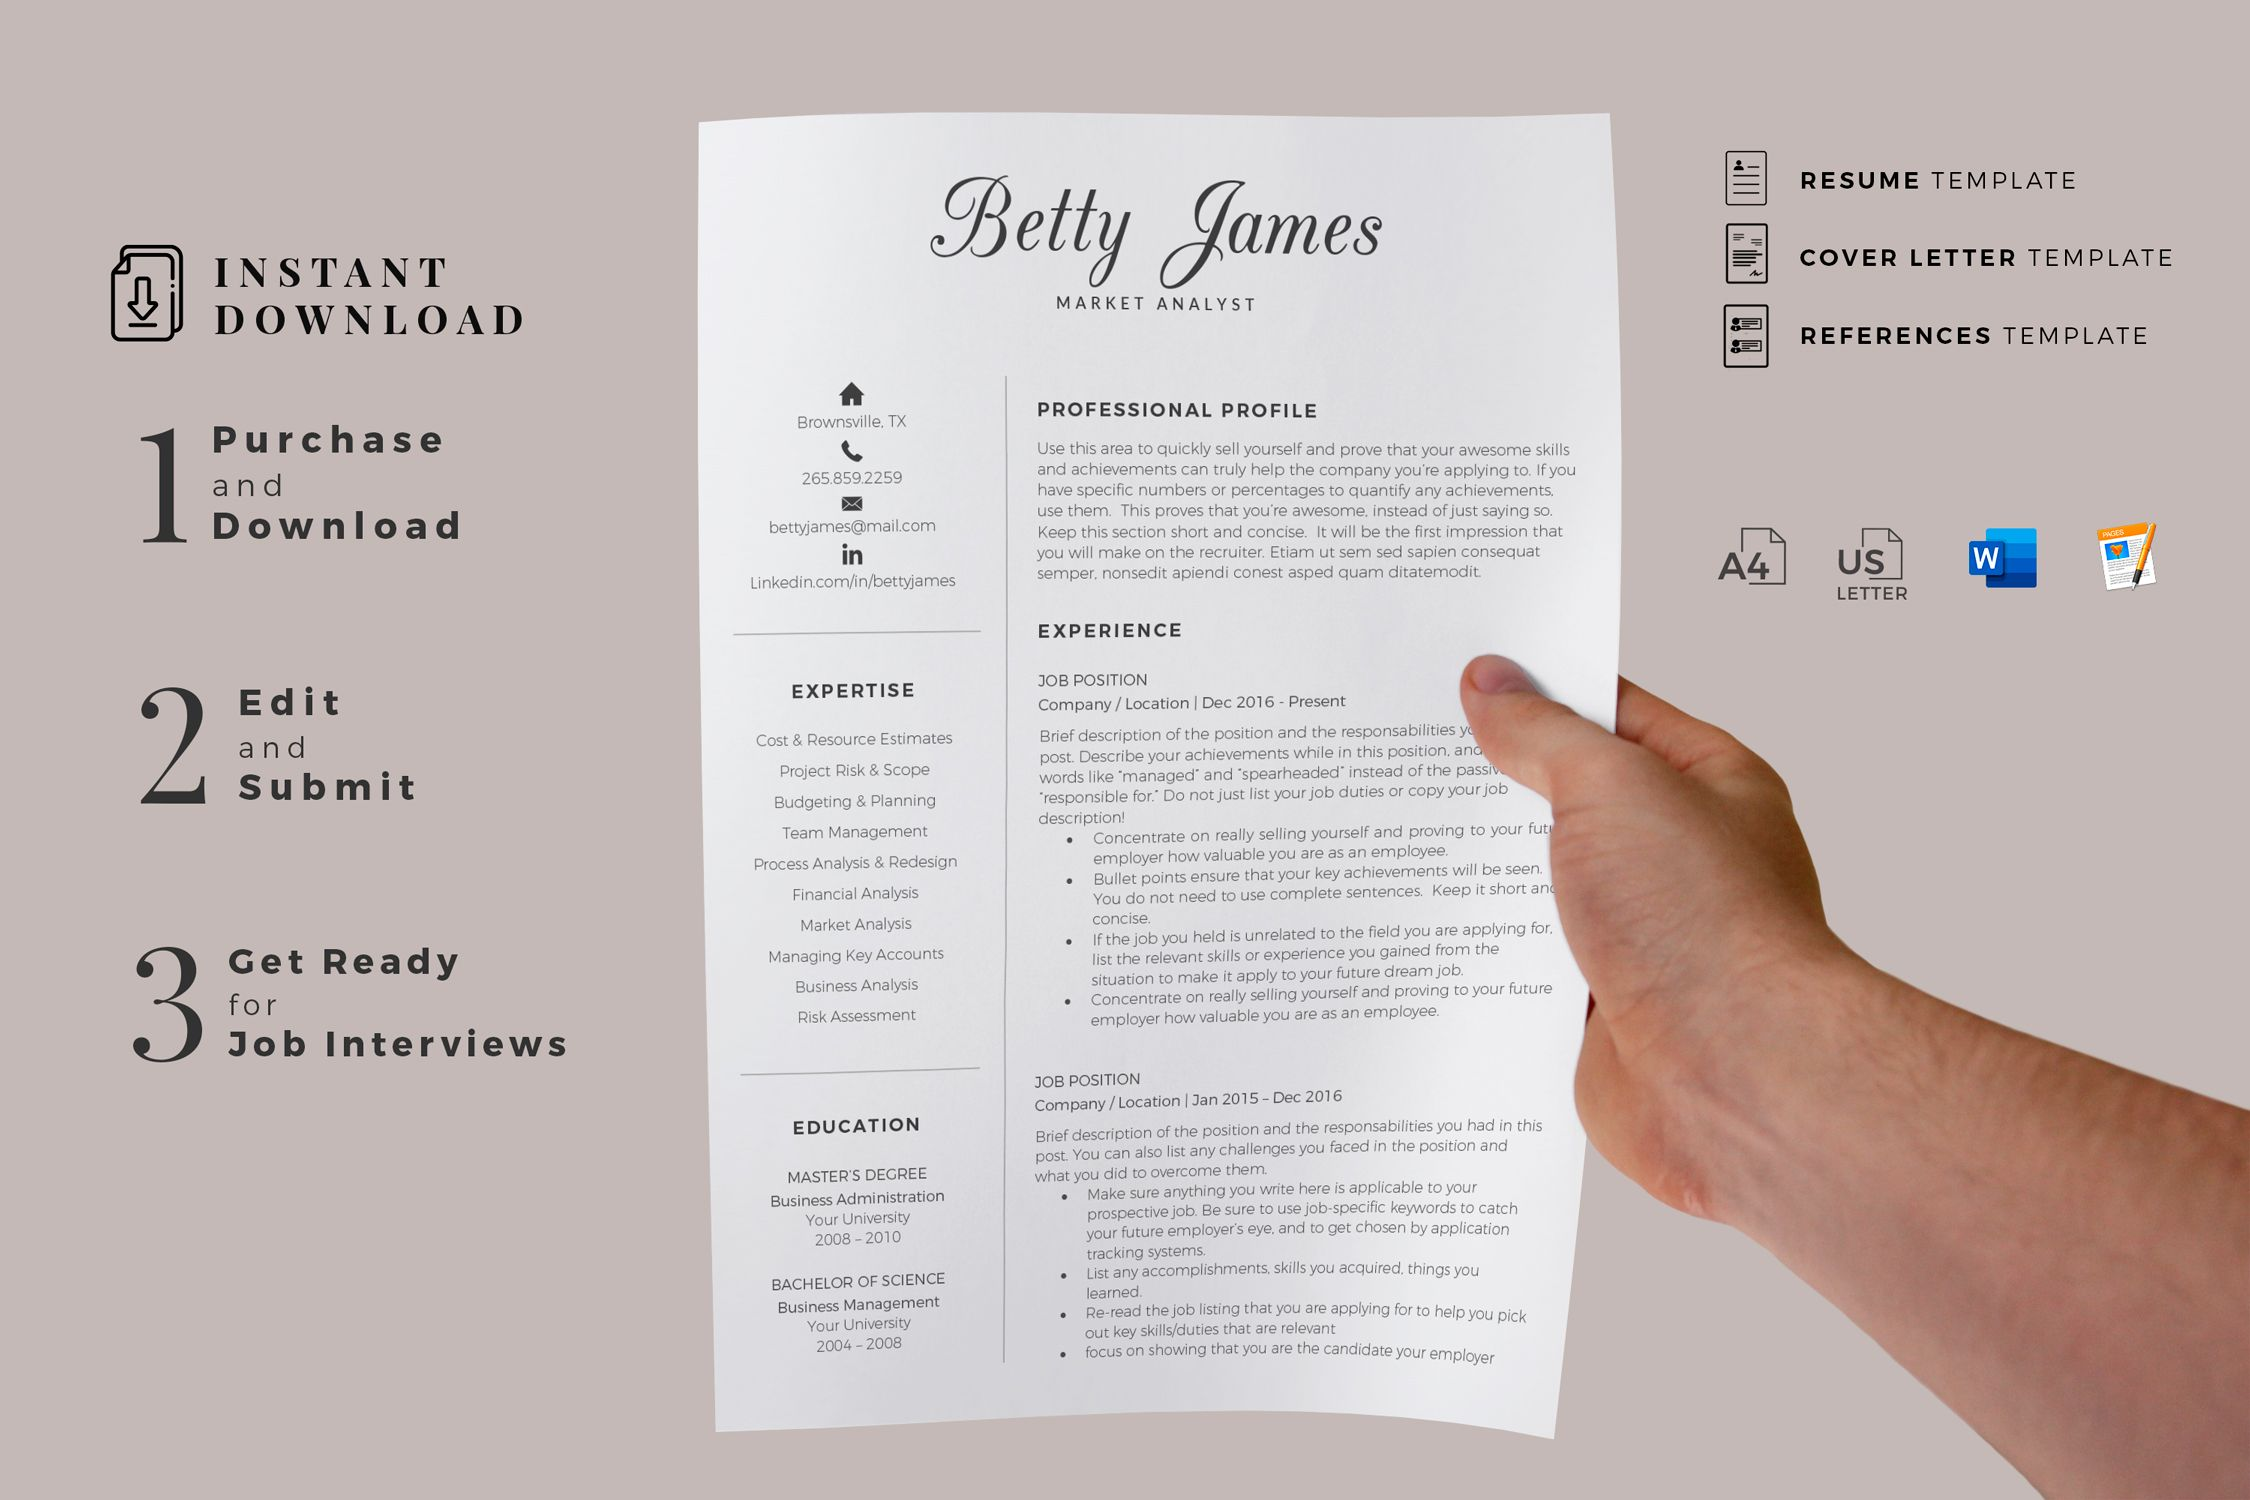 Creative Resume Templates For Ms Word And Mac Pages Professional Resume Templates And Matchi Cover Letter For Resume Creative Resume Templates Resume Template